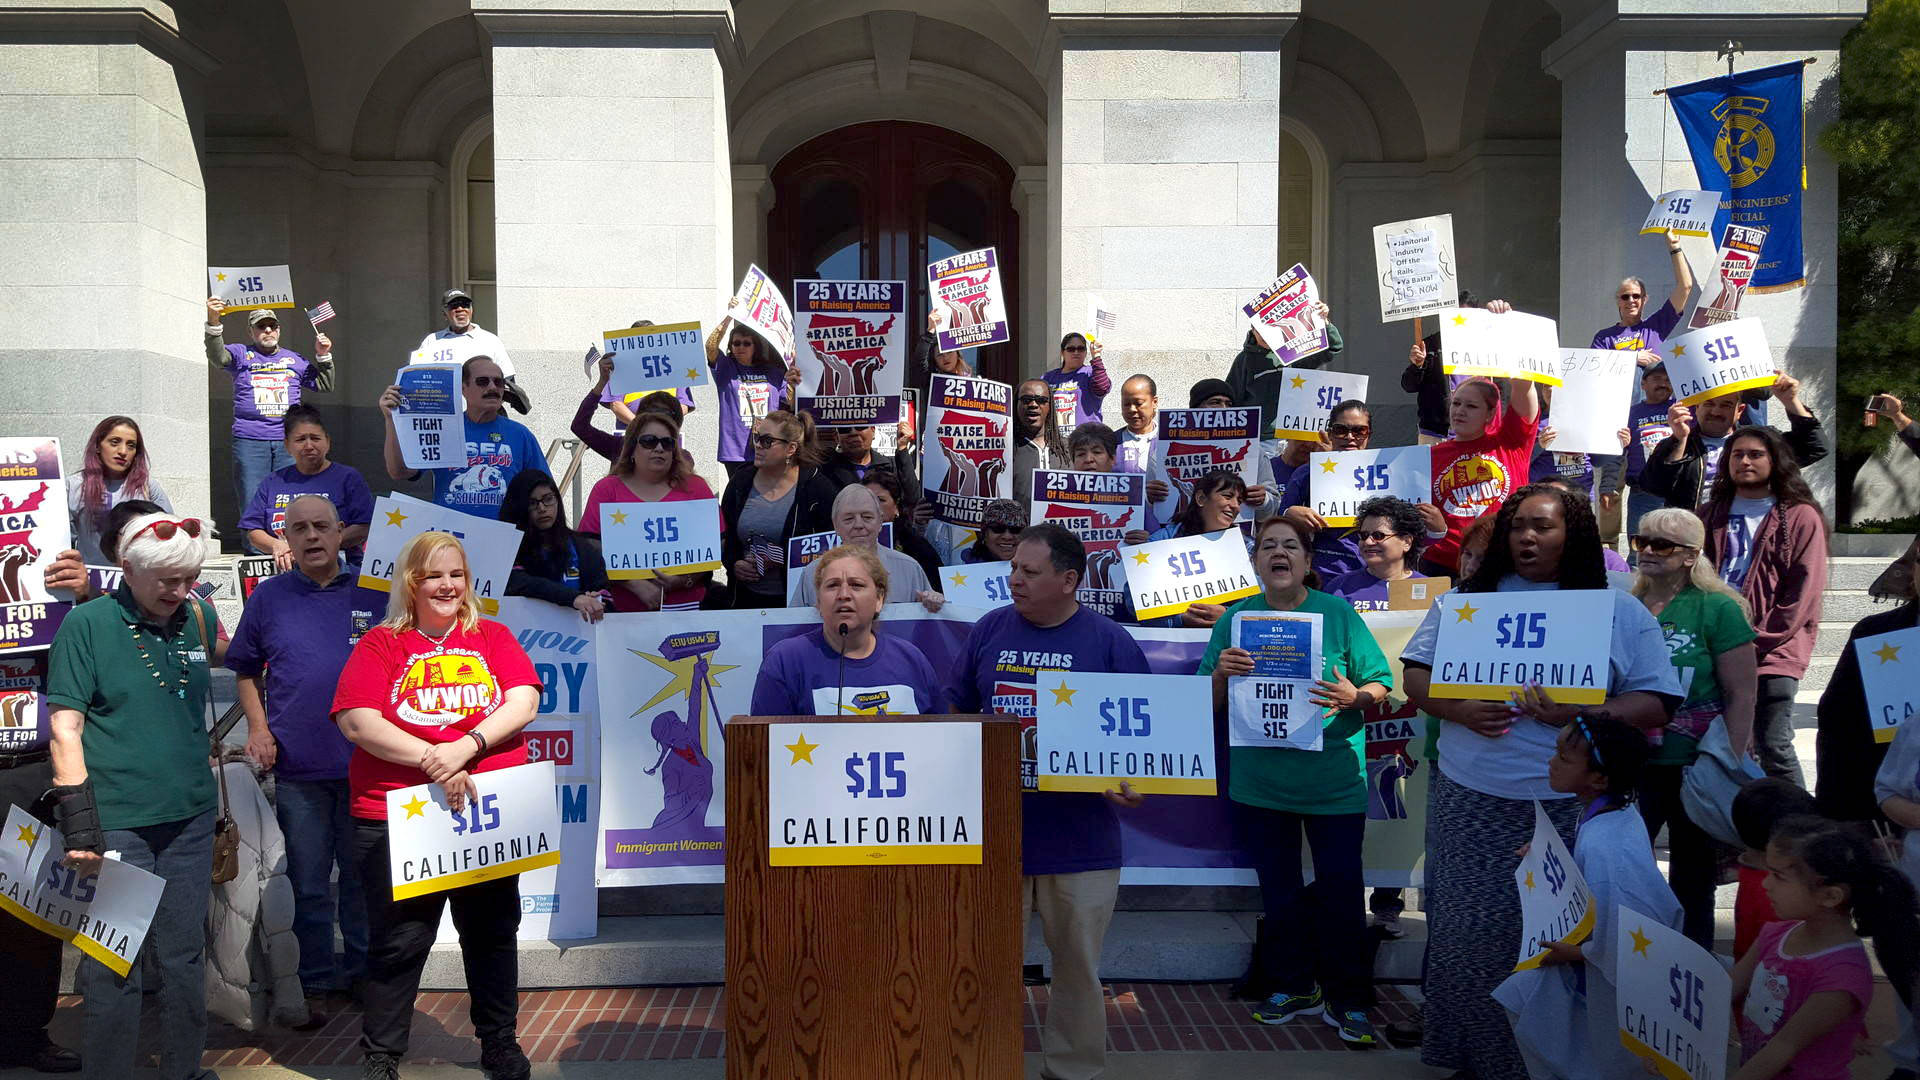 Supporters of a $15 per hour minimum wage rally outside the state Capitol in Sacramento on March 31, 2016. Katie Orr/KQED